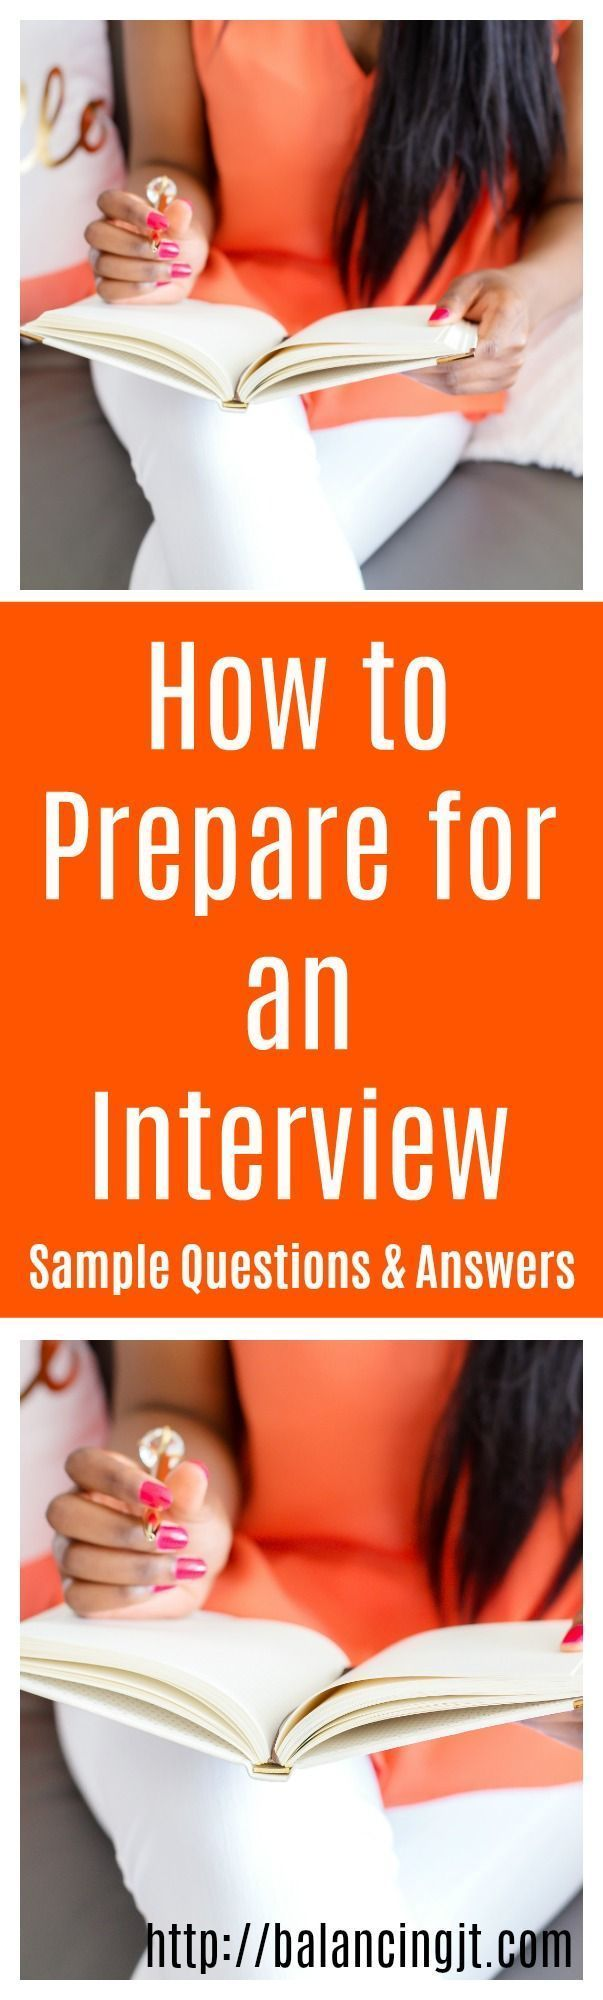 Sample Interview Questions How To Prepare For The Top 3 Personal Background Interview Questions .